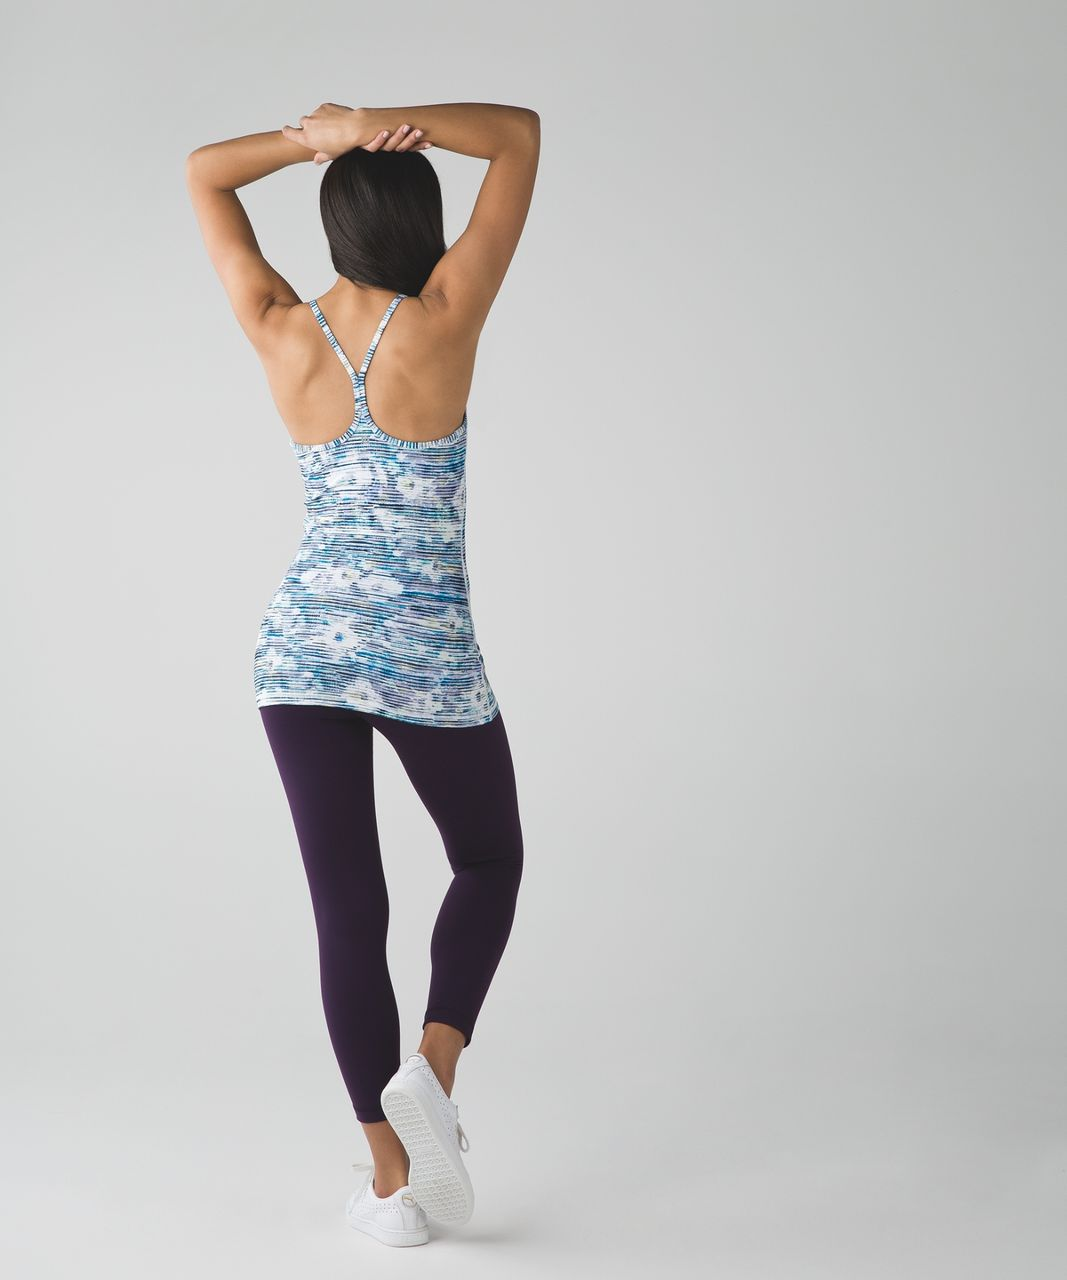 Lululemon Power Y Tank - Blurry Belle Multi / White